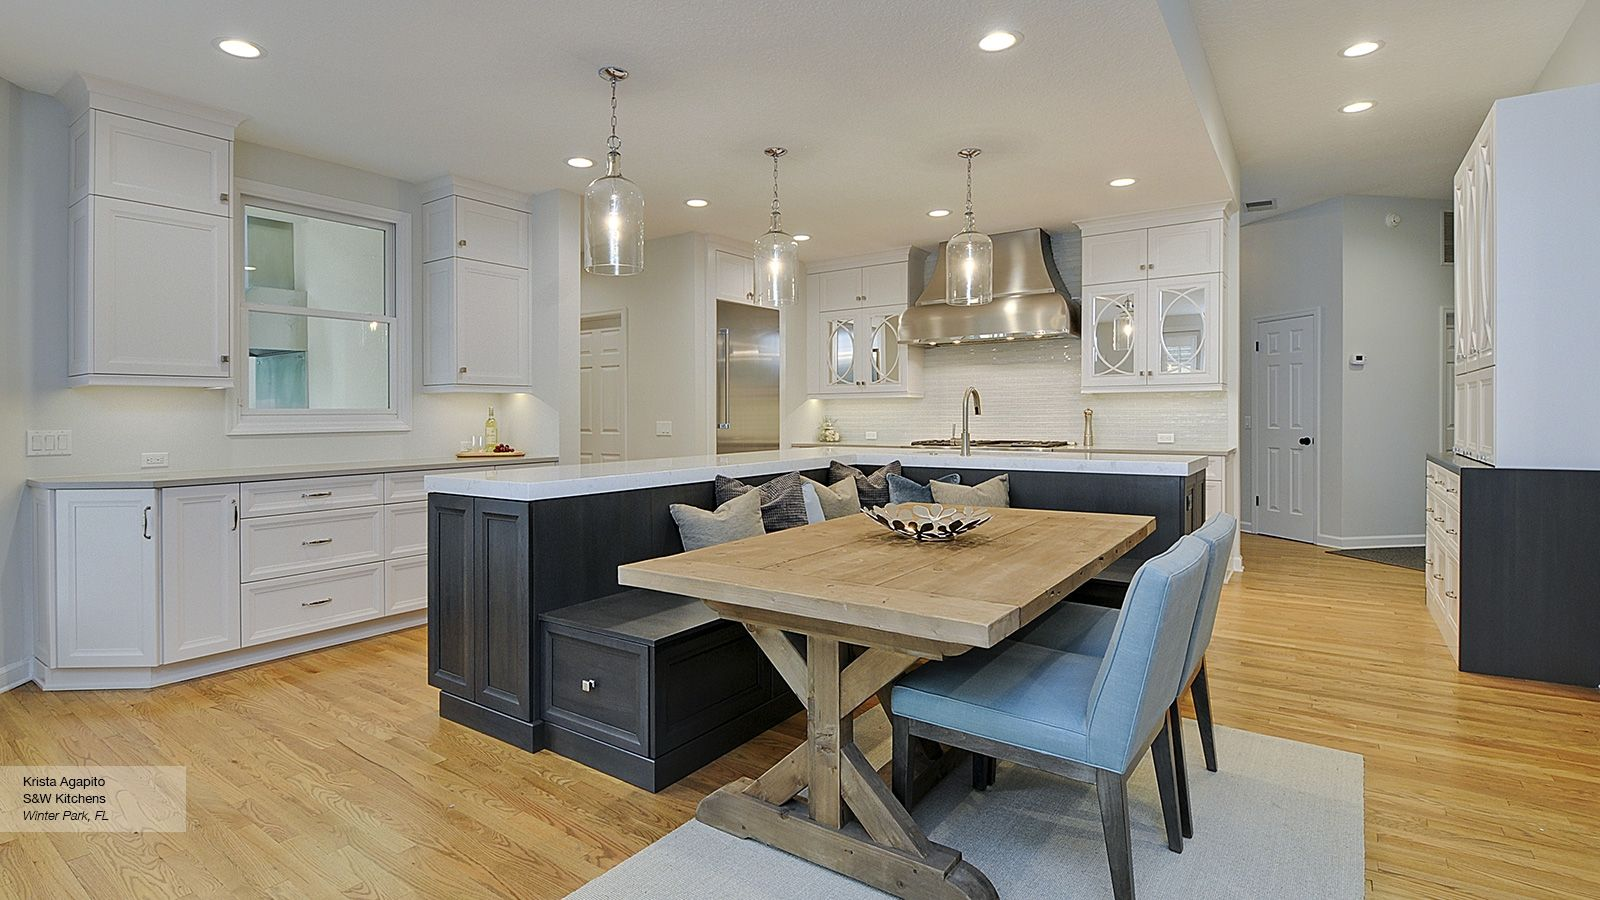 Cute Kitchen Island With Bench Seating Large And Rectangular Table Kitchen Island With Bench Seating Kitchen Island And Table Combo Kitchen Seating